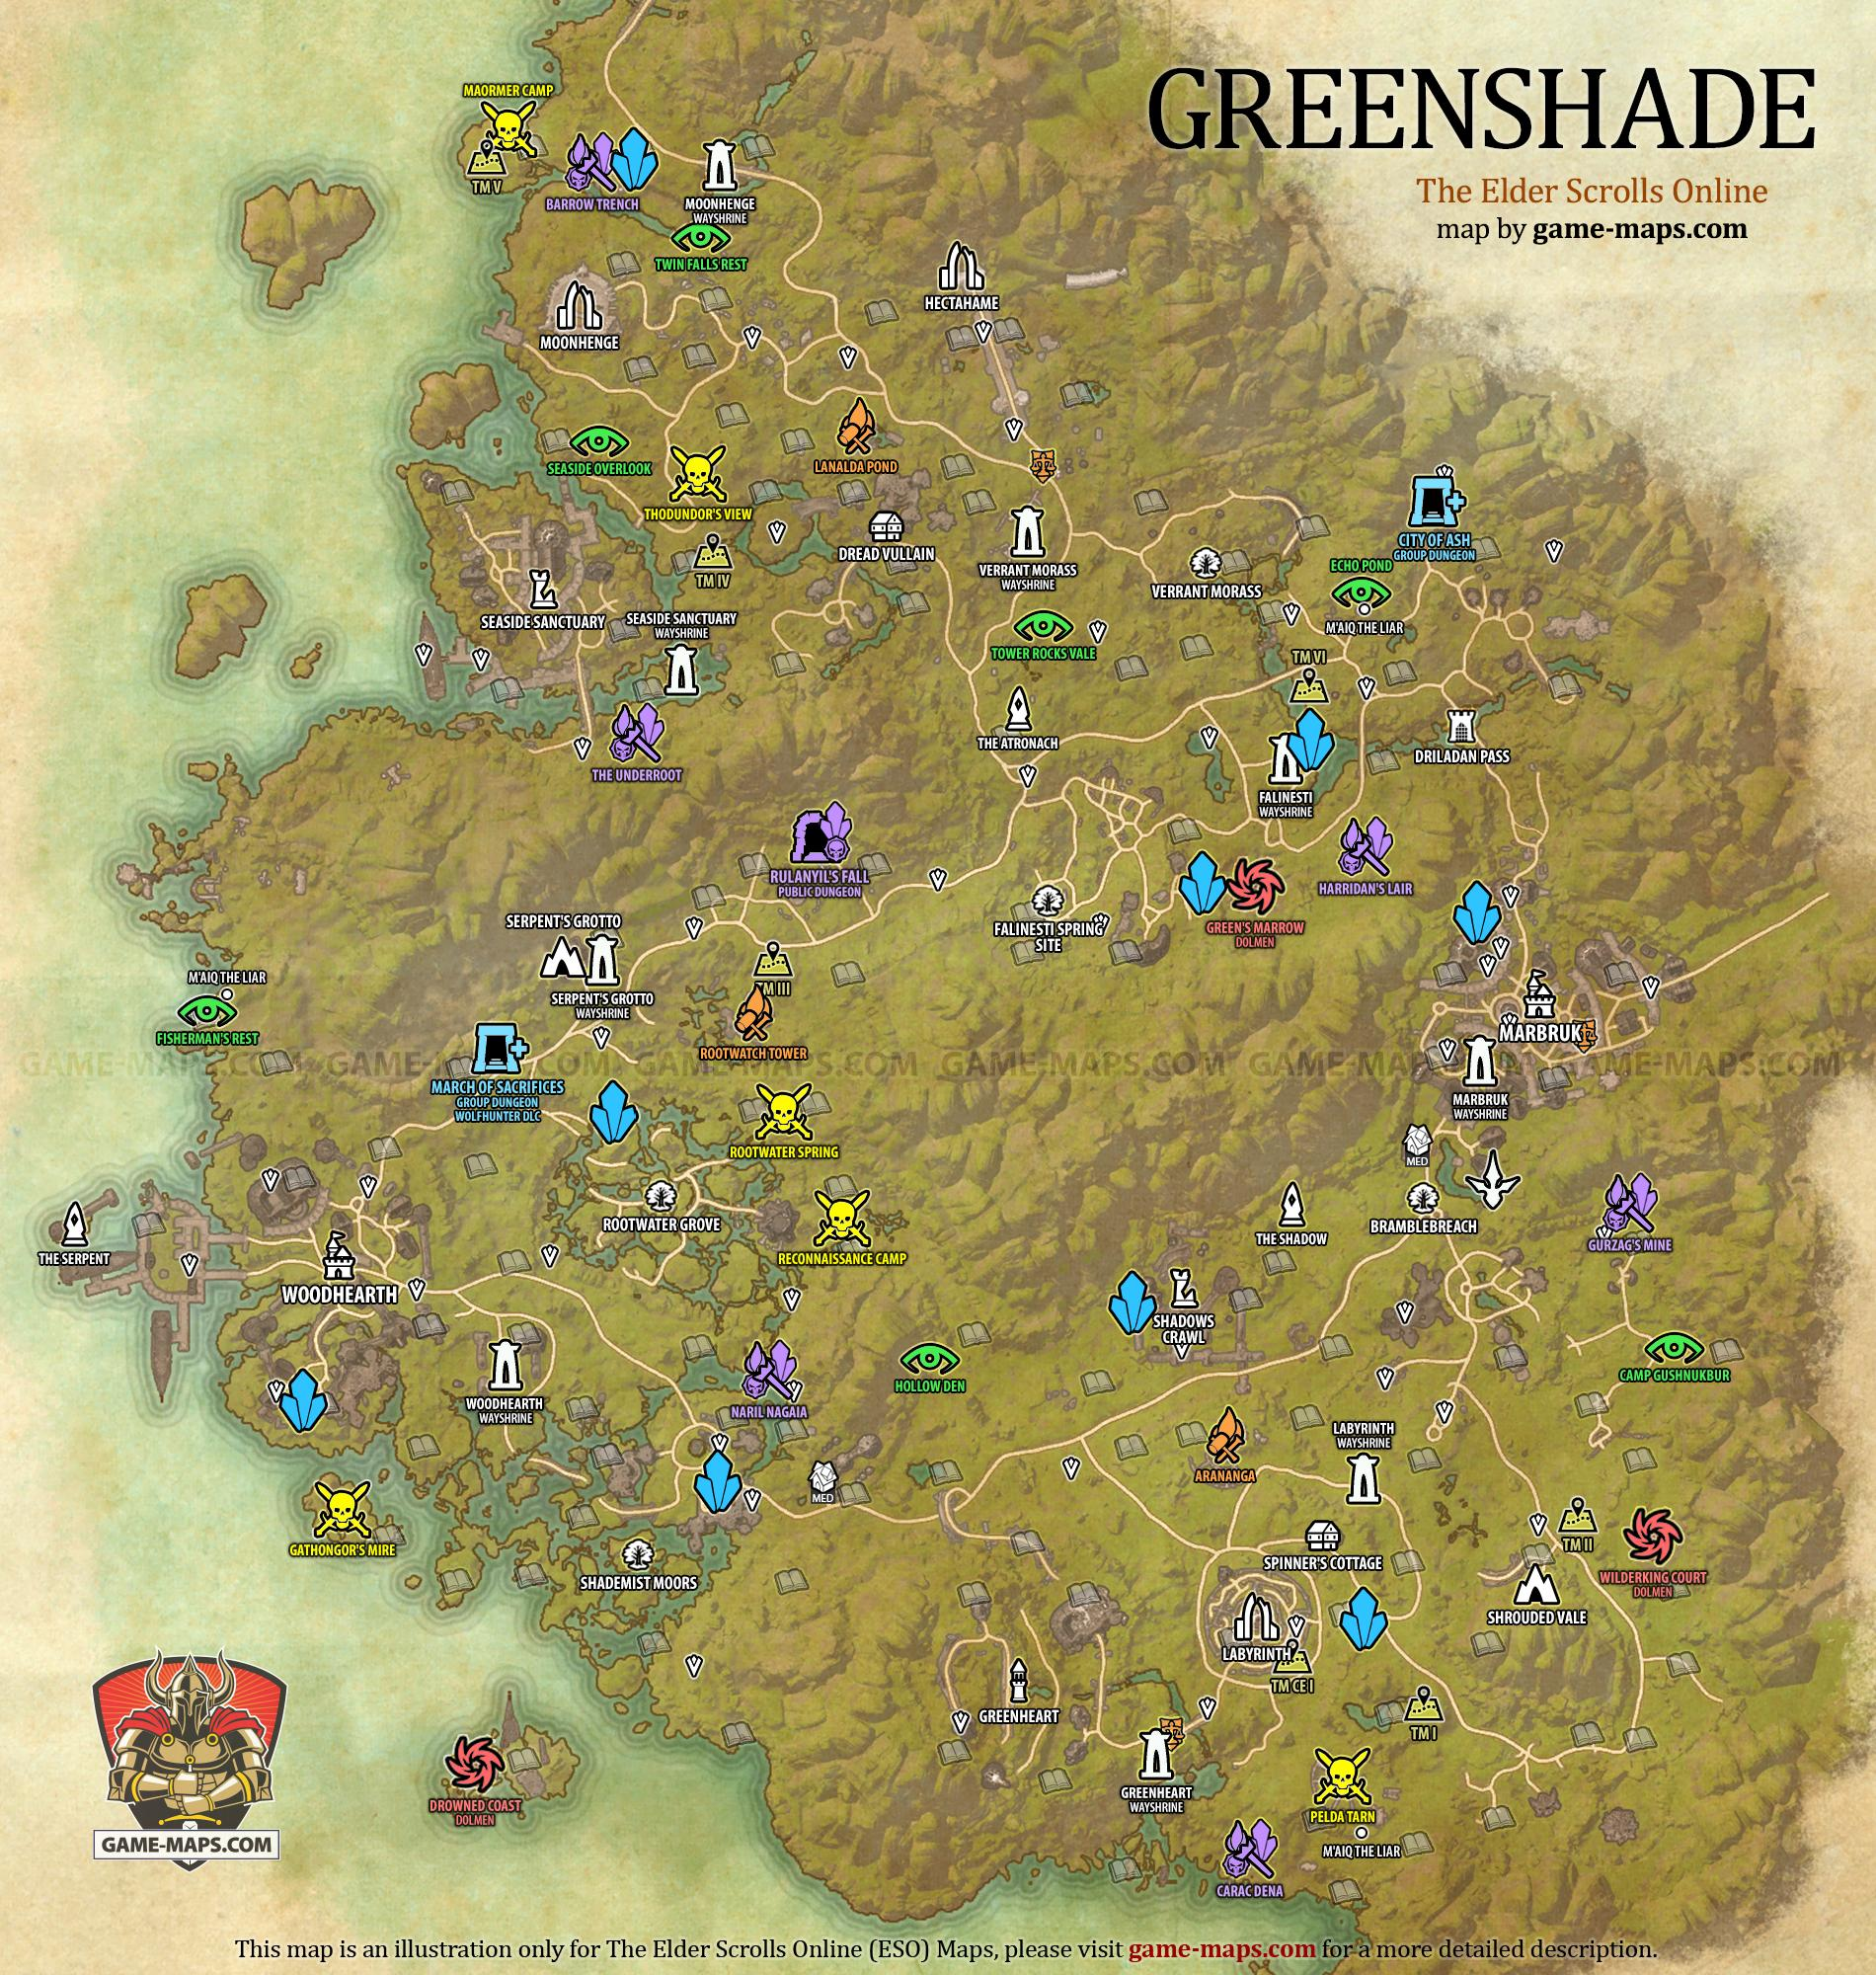 Greenshade map the elder scrolls online game maps greenshade zone map the elder scrolls online eso maps guides walkthroughs gumiabroncs Image collections